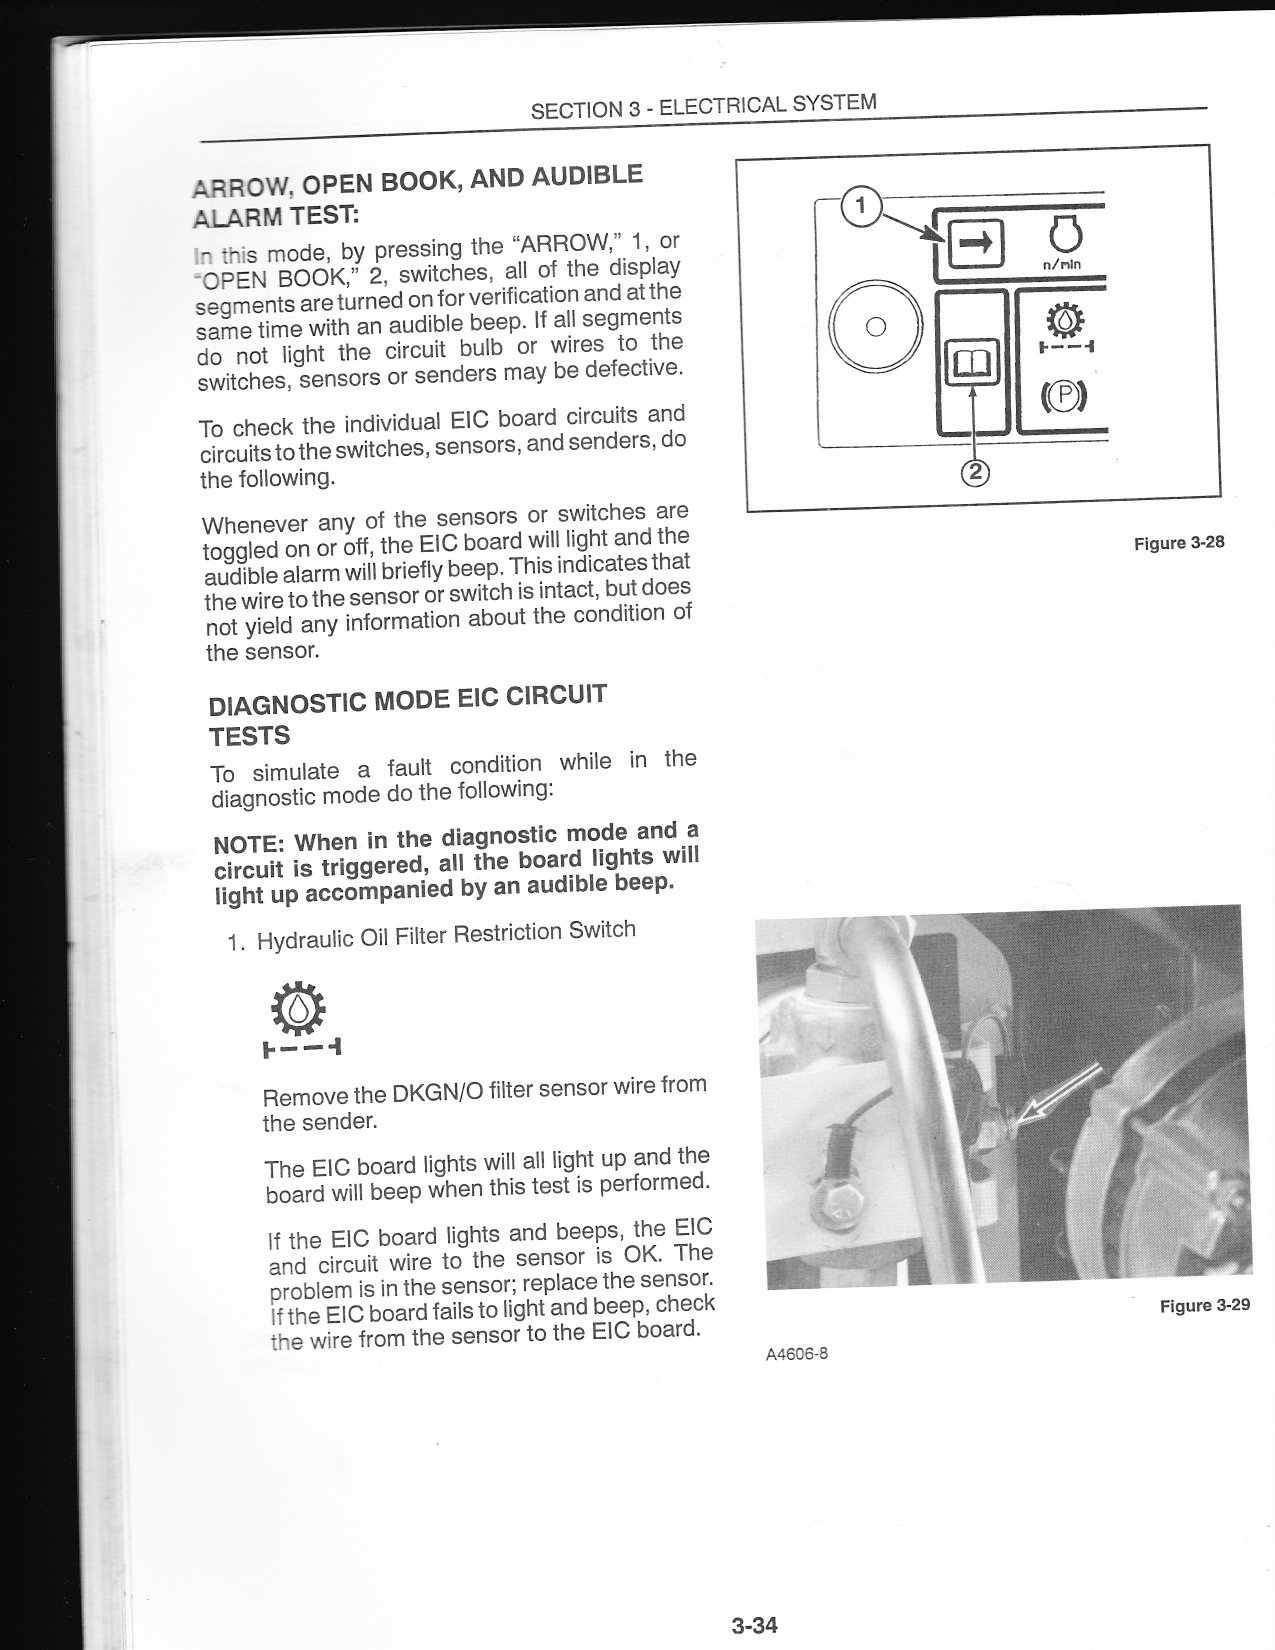 2009 09 05_165430_865_no_start_0002 new holland lx885 service manual download youtube on wiring new holland lx885 wiring diagram at panicattacktreatment.co